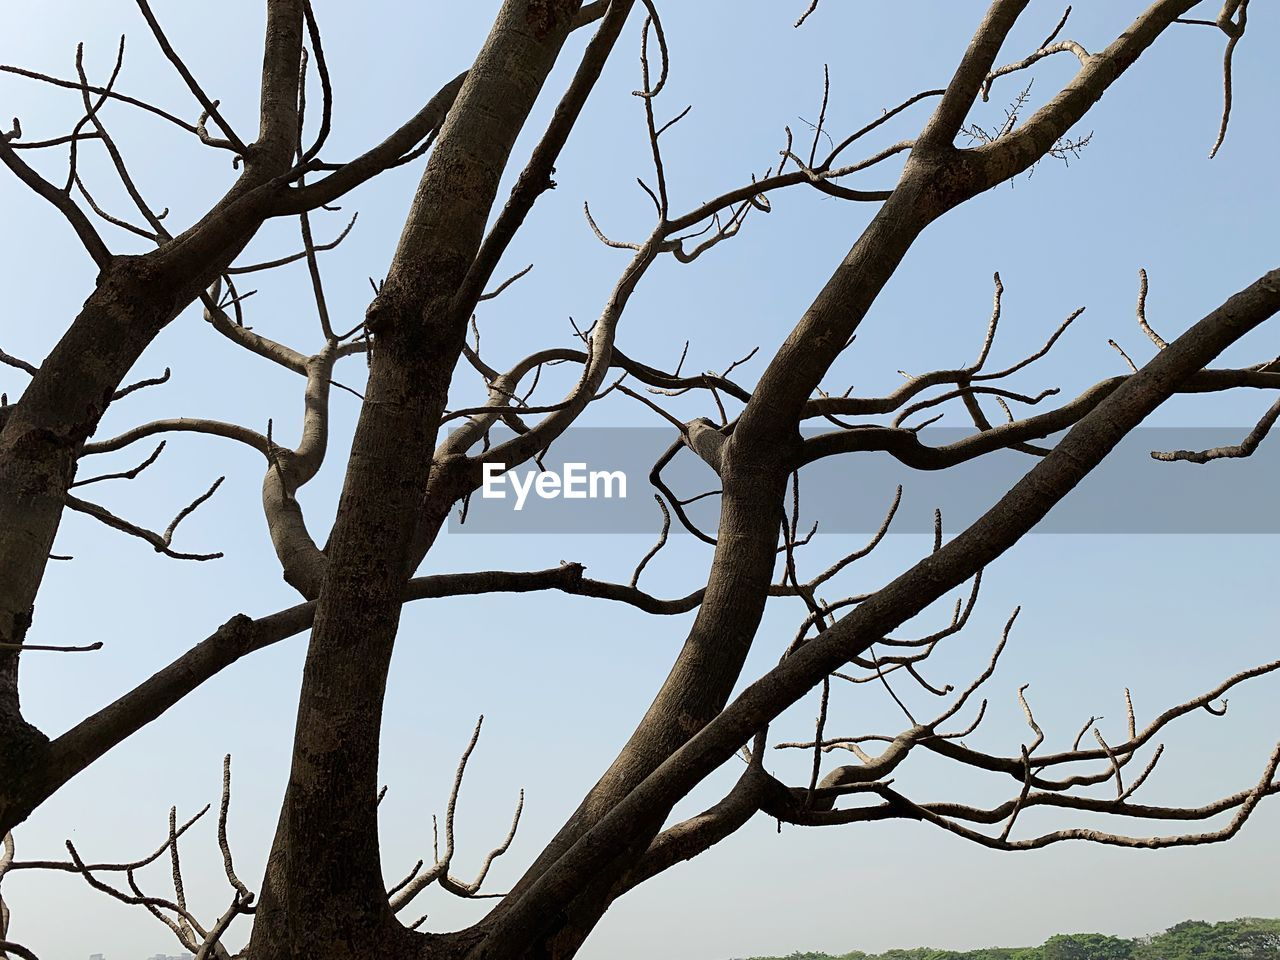 tree, branch, sky, plant, bare tree, low angle view, clear sky, no people, nature, day, tranquility, outdoors, beauty in nature, growth, twig, scenics - nature, trunk, animals in the wild, group of animals, animal wildlife